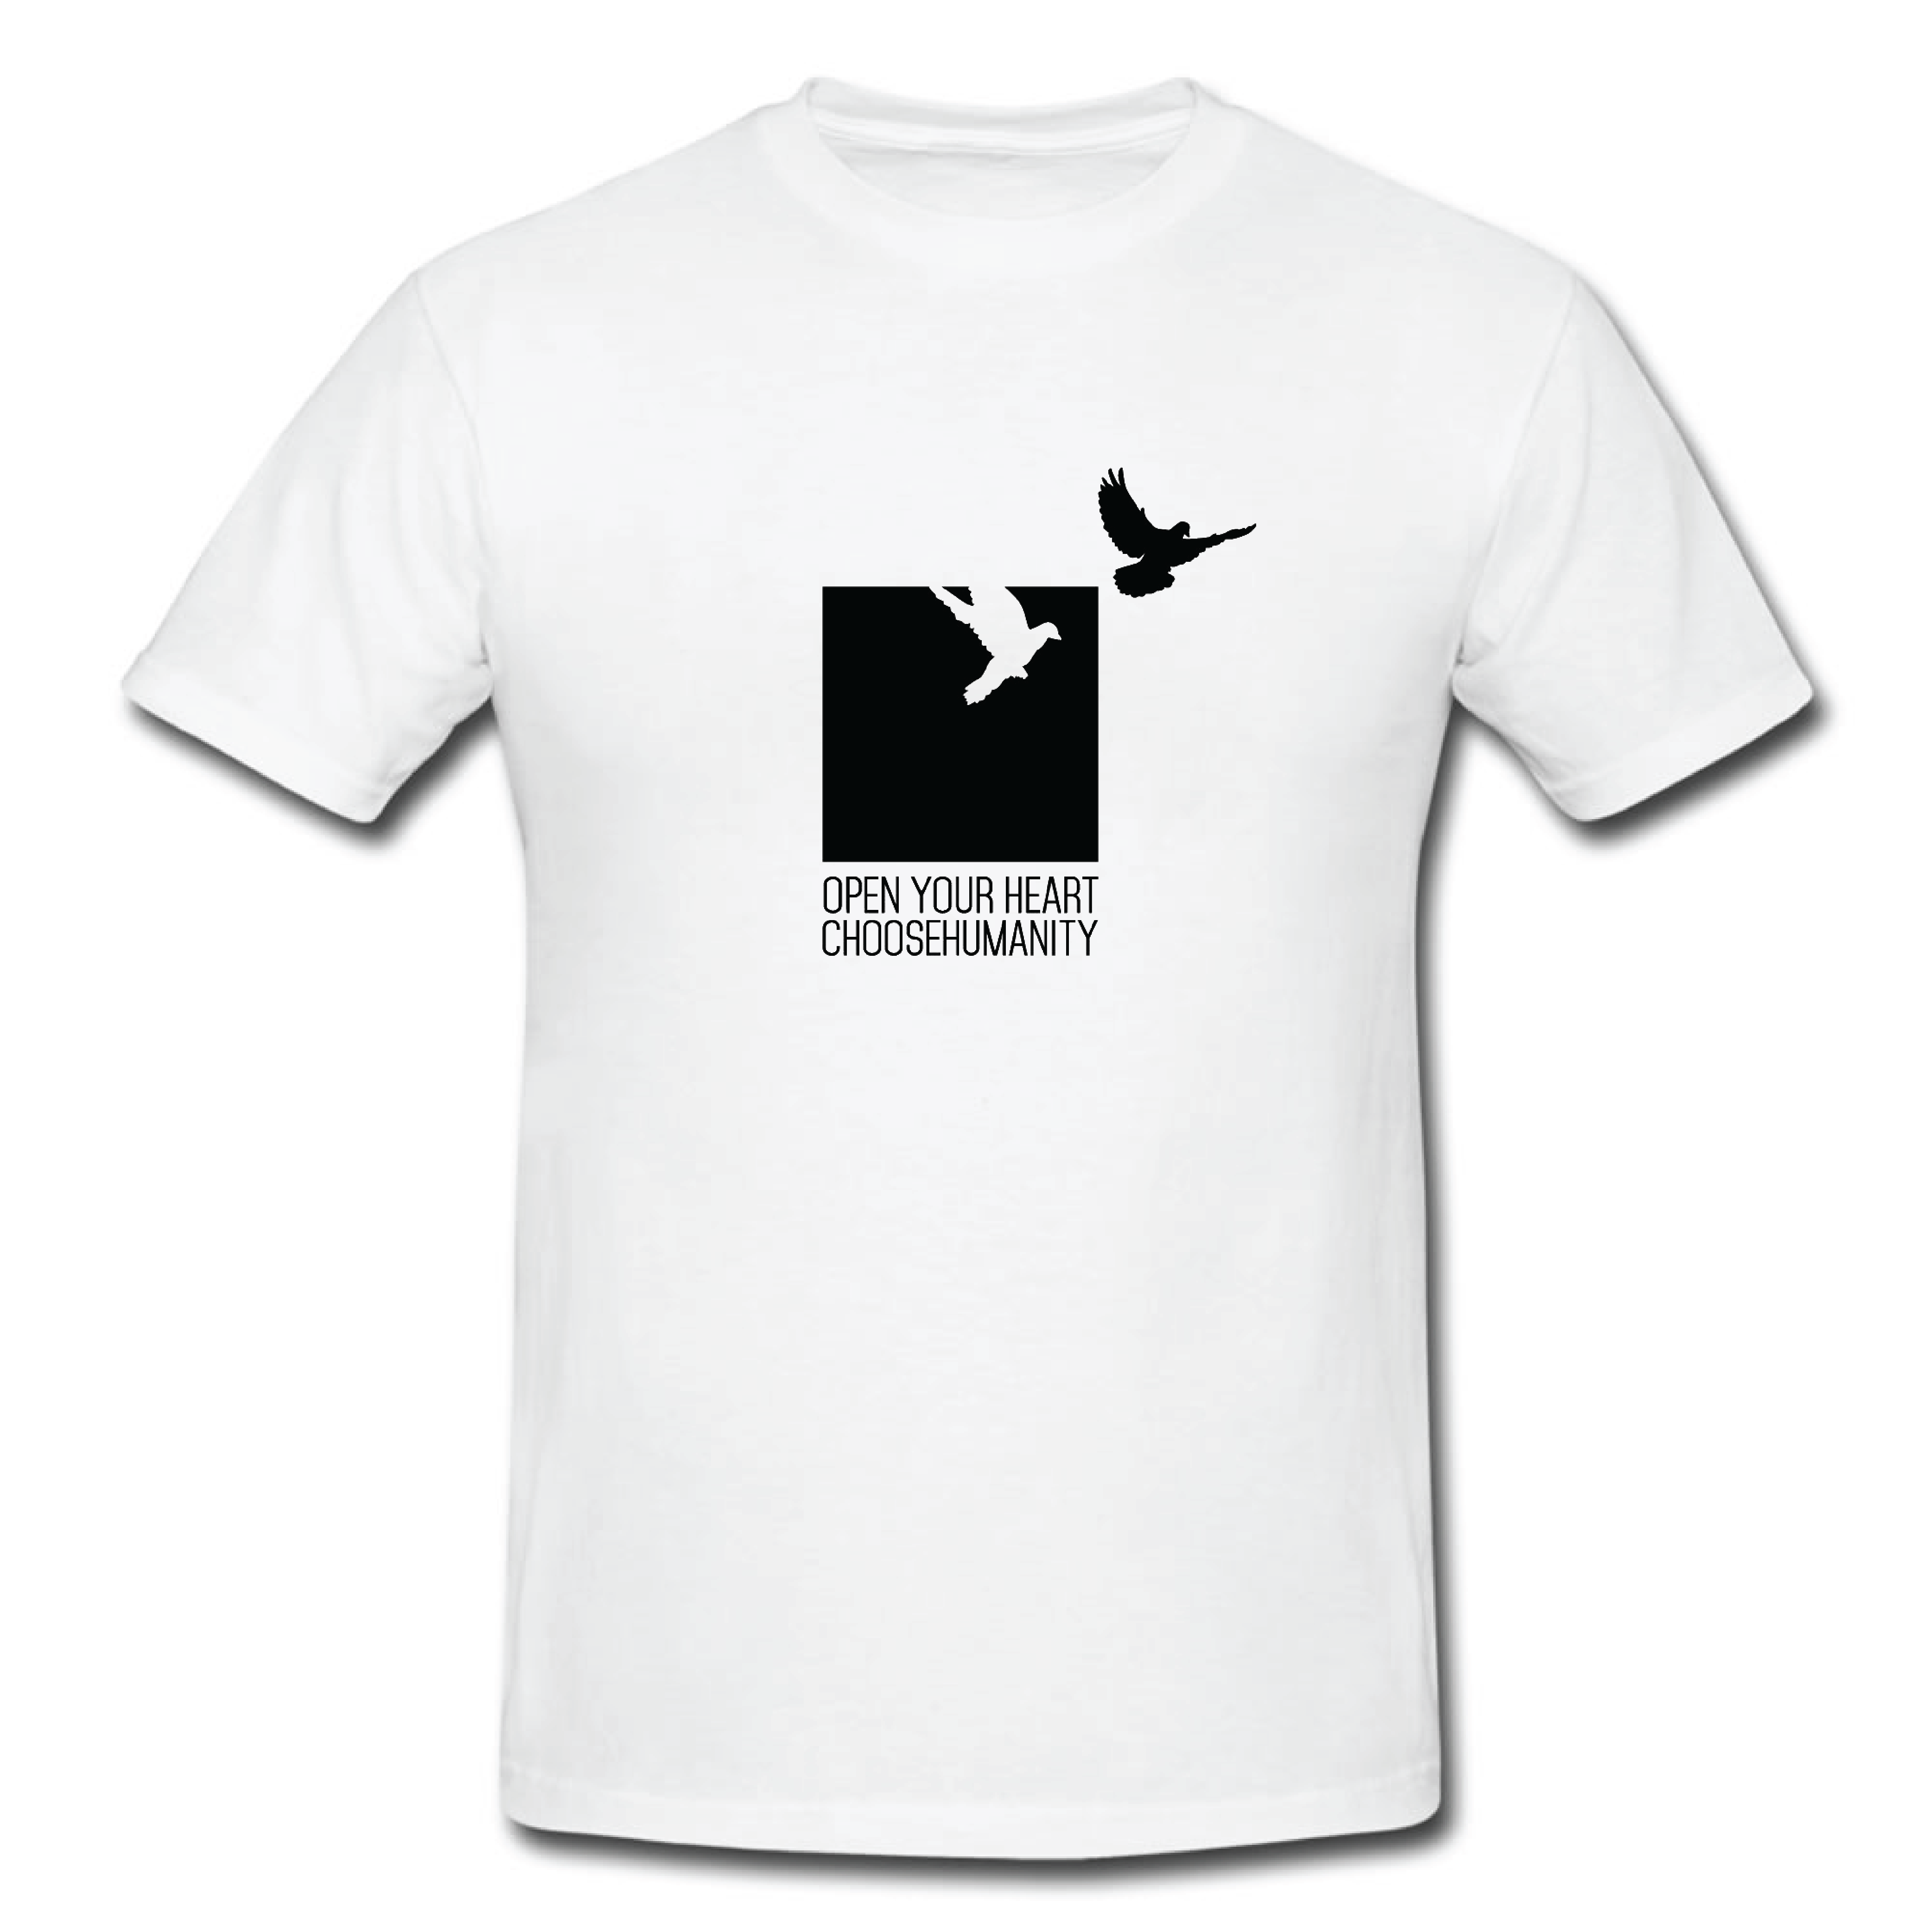 T-Shirt ChooseHumanity